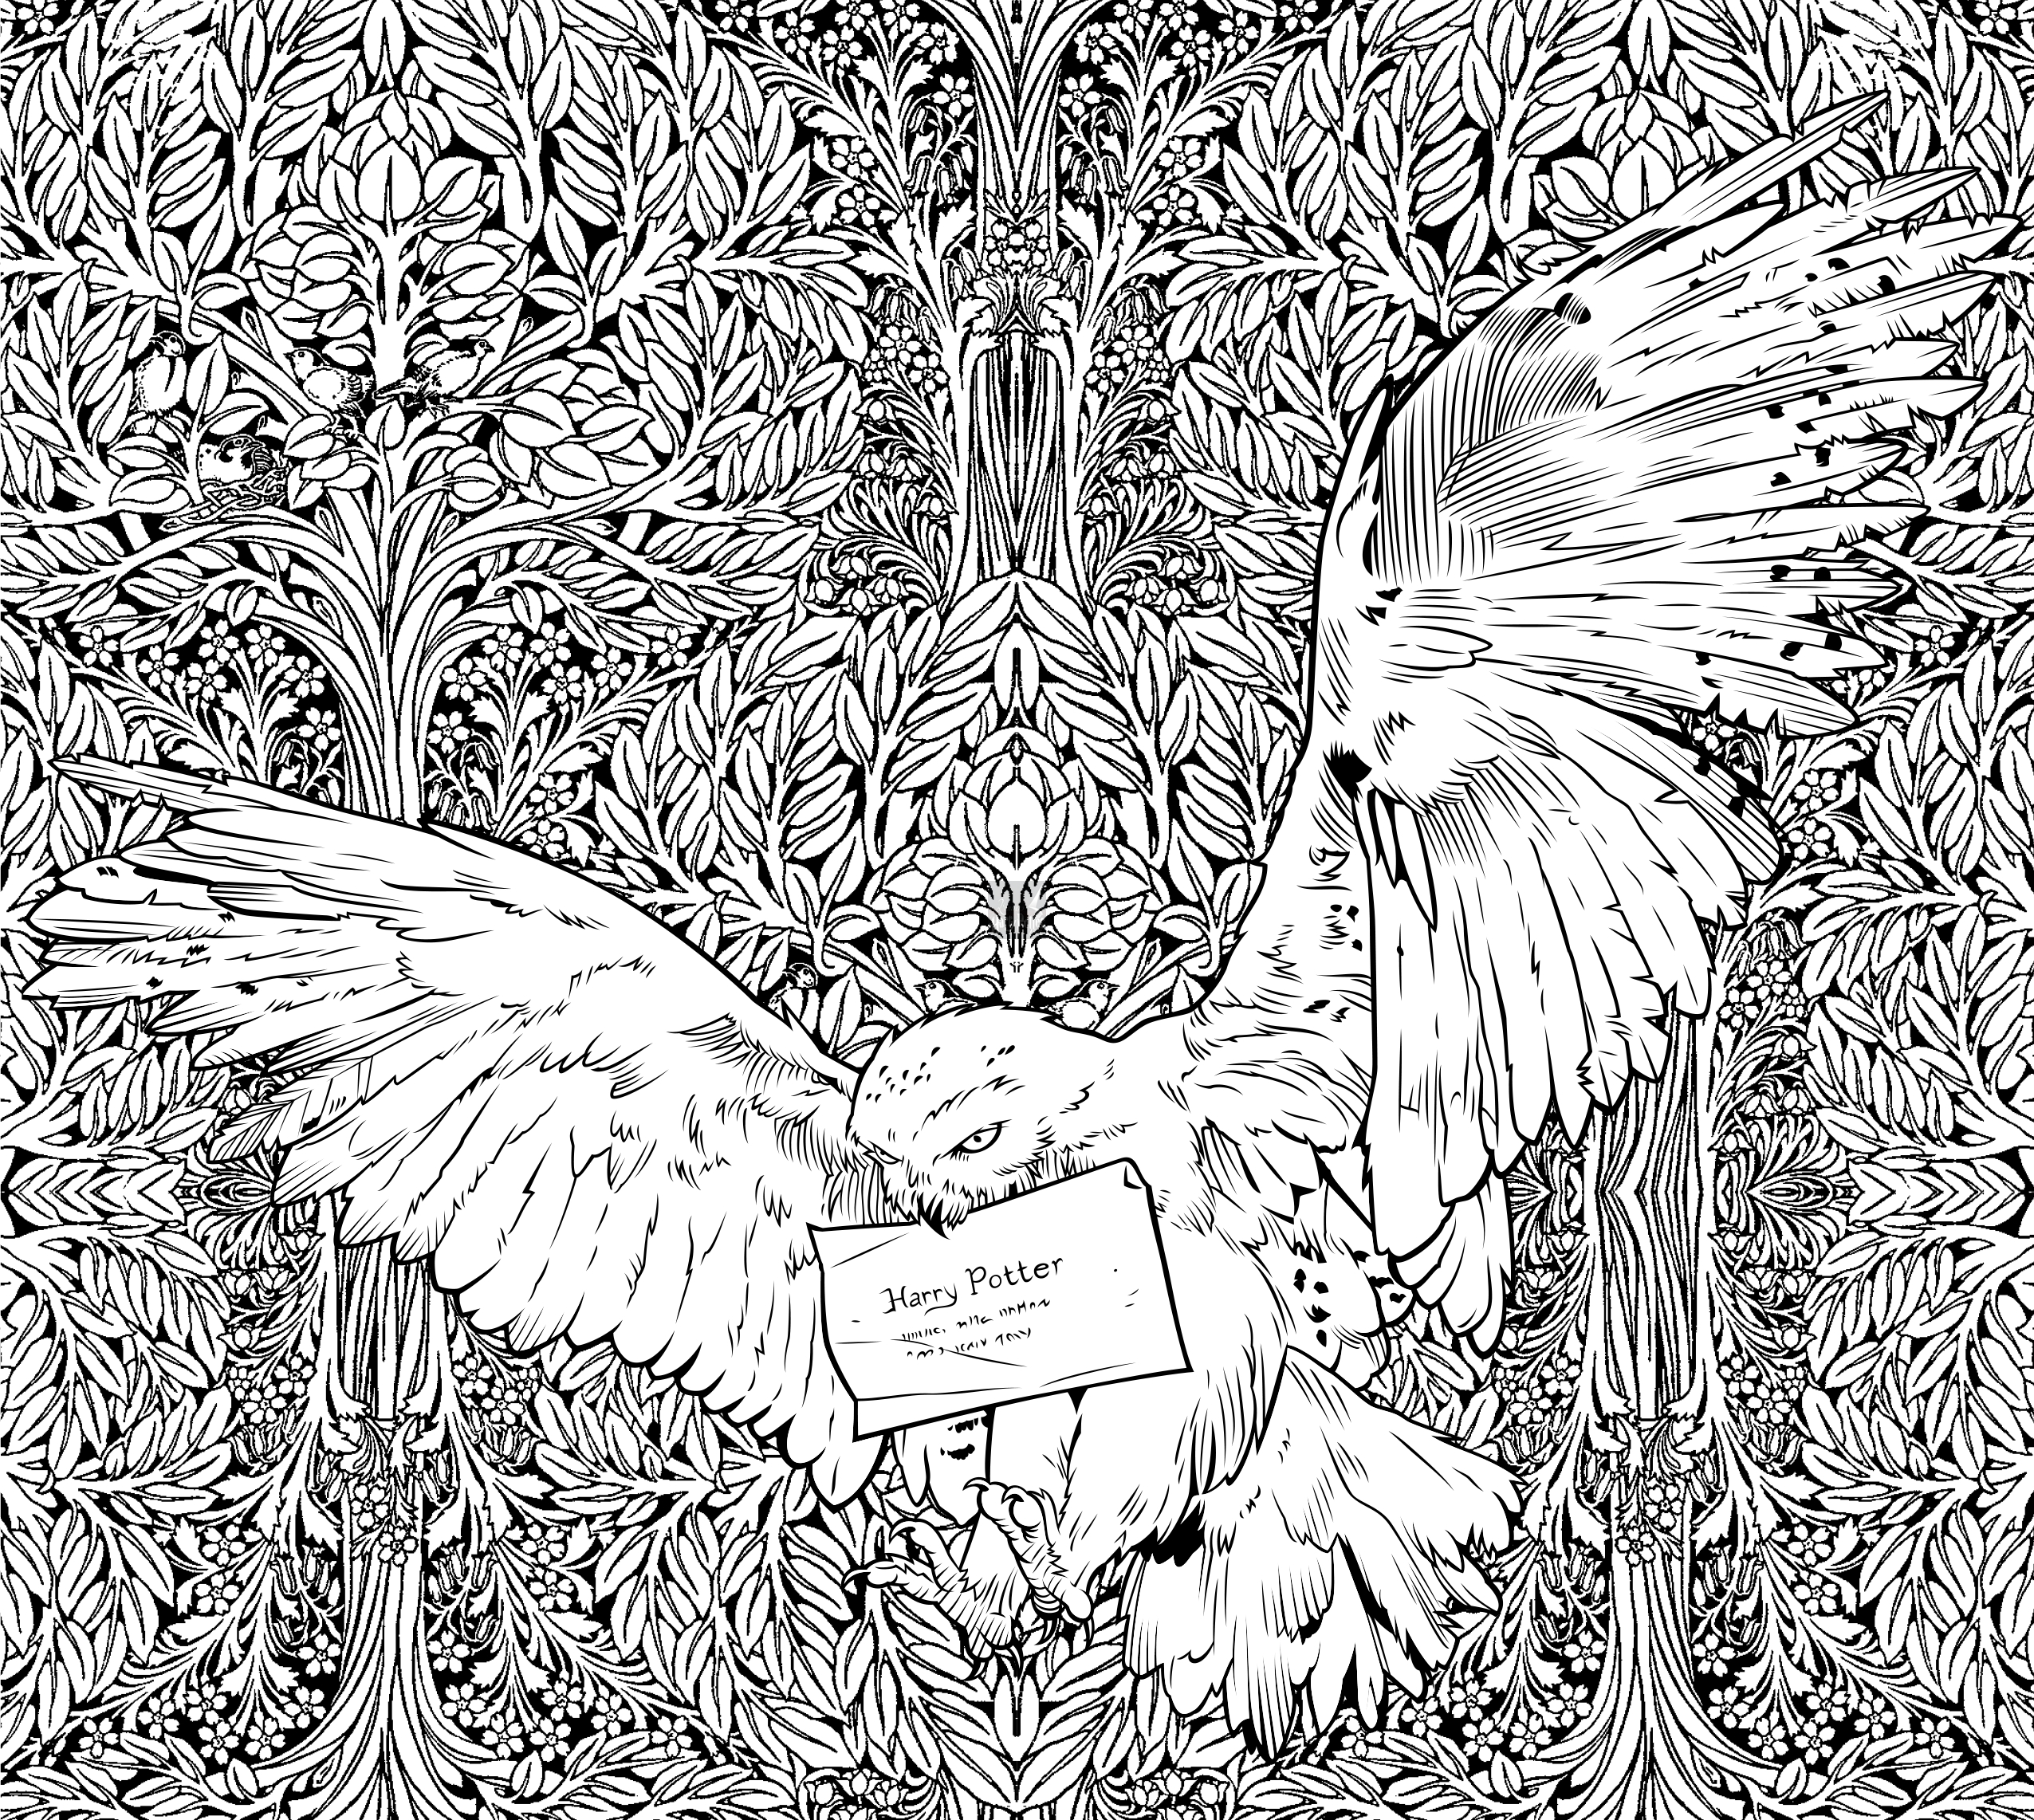 Livre de coloriage harry potter le miroir du ris d le for Miroir coloriage